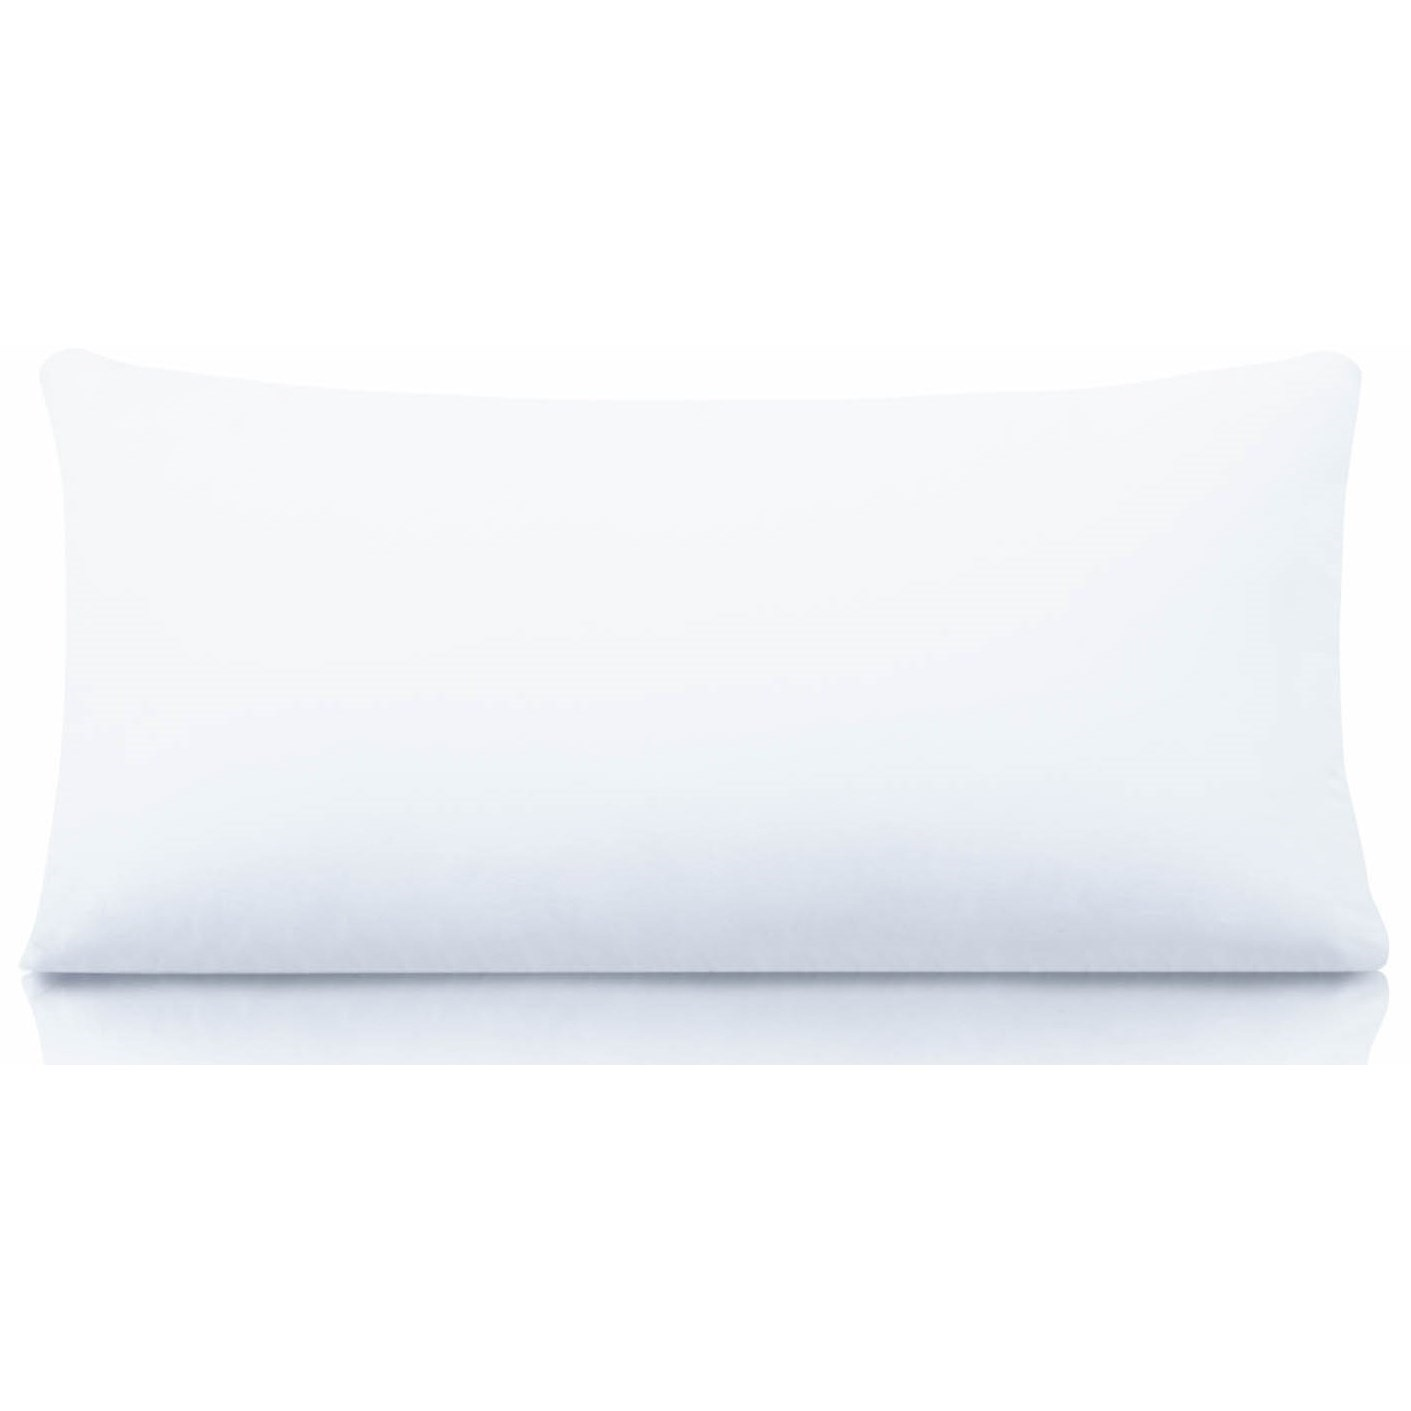 Cotton Encased Down Queen Cotton Encased Down Blend Pillow by Malouf at Northeast Factory Direct